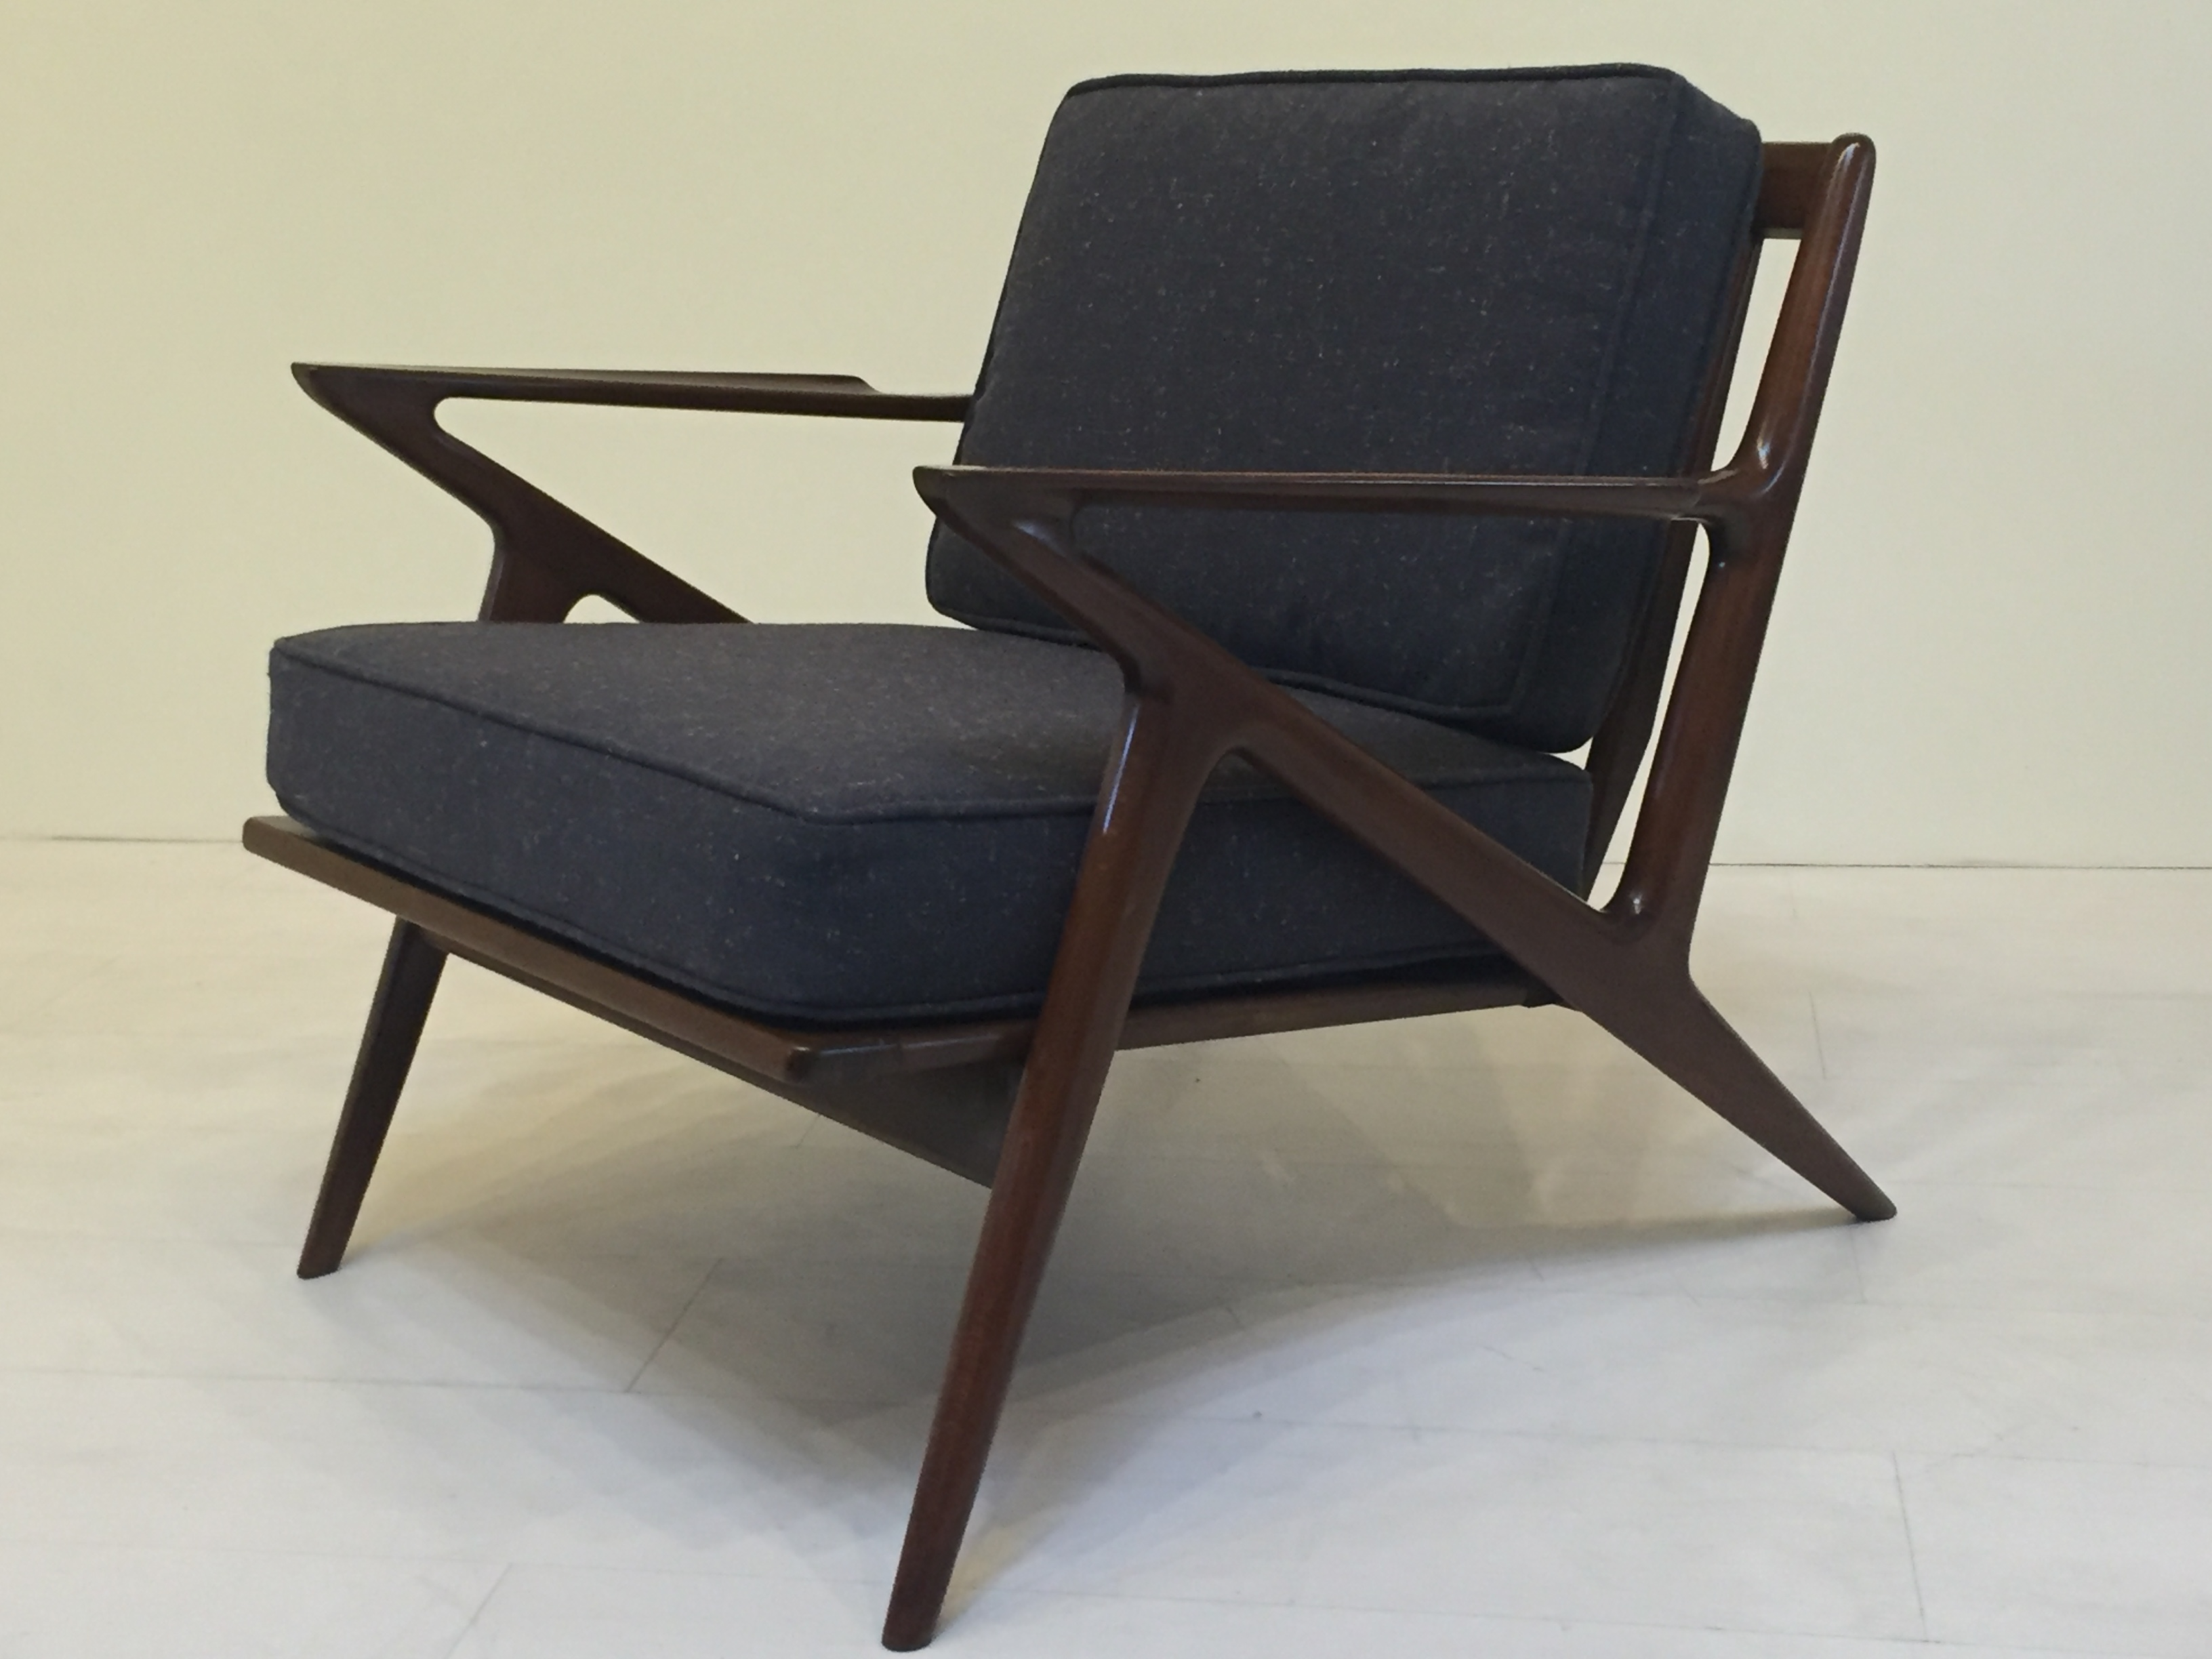 Beau This Is A Selig Z Chair Designed By Poul Jensen. Founded In 1931, The